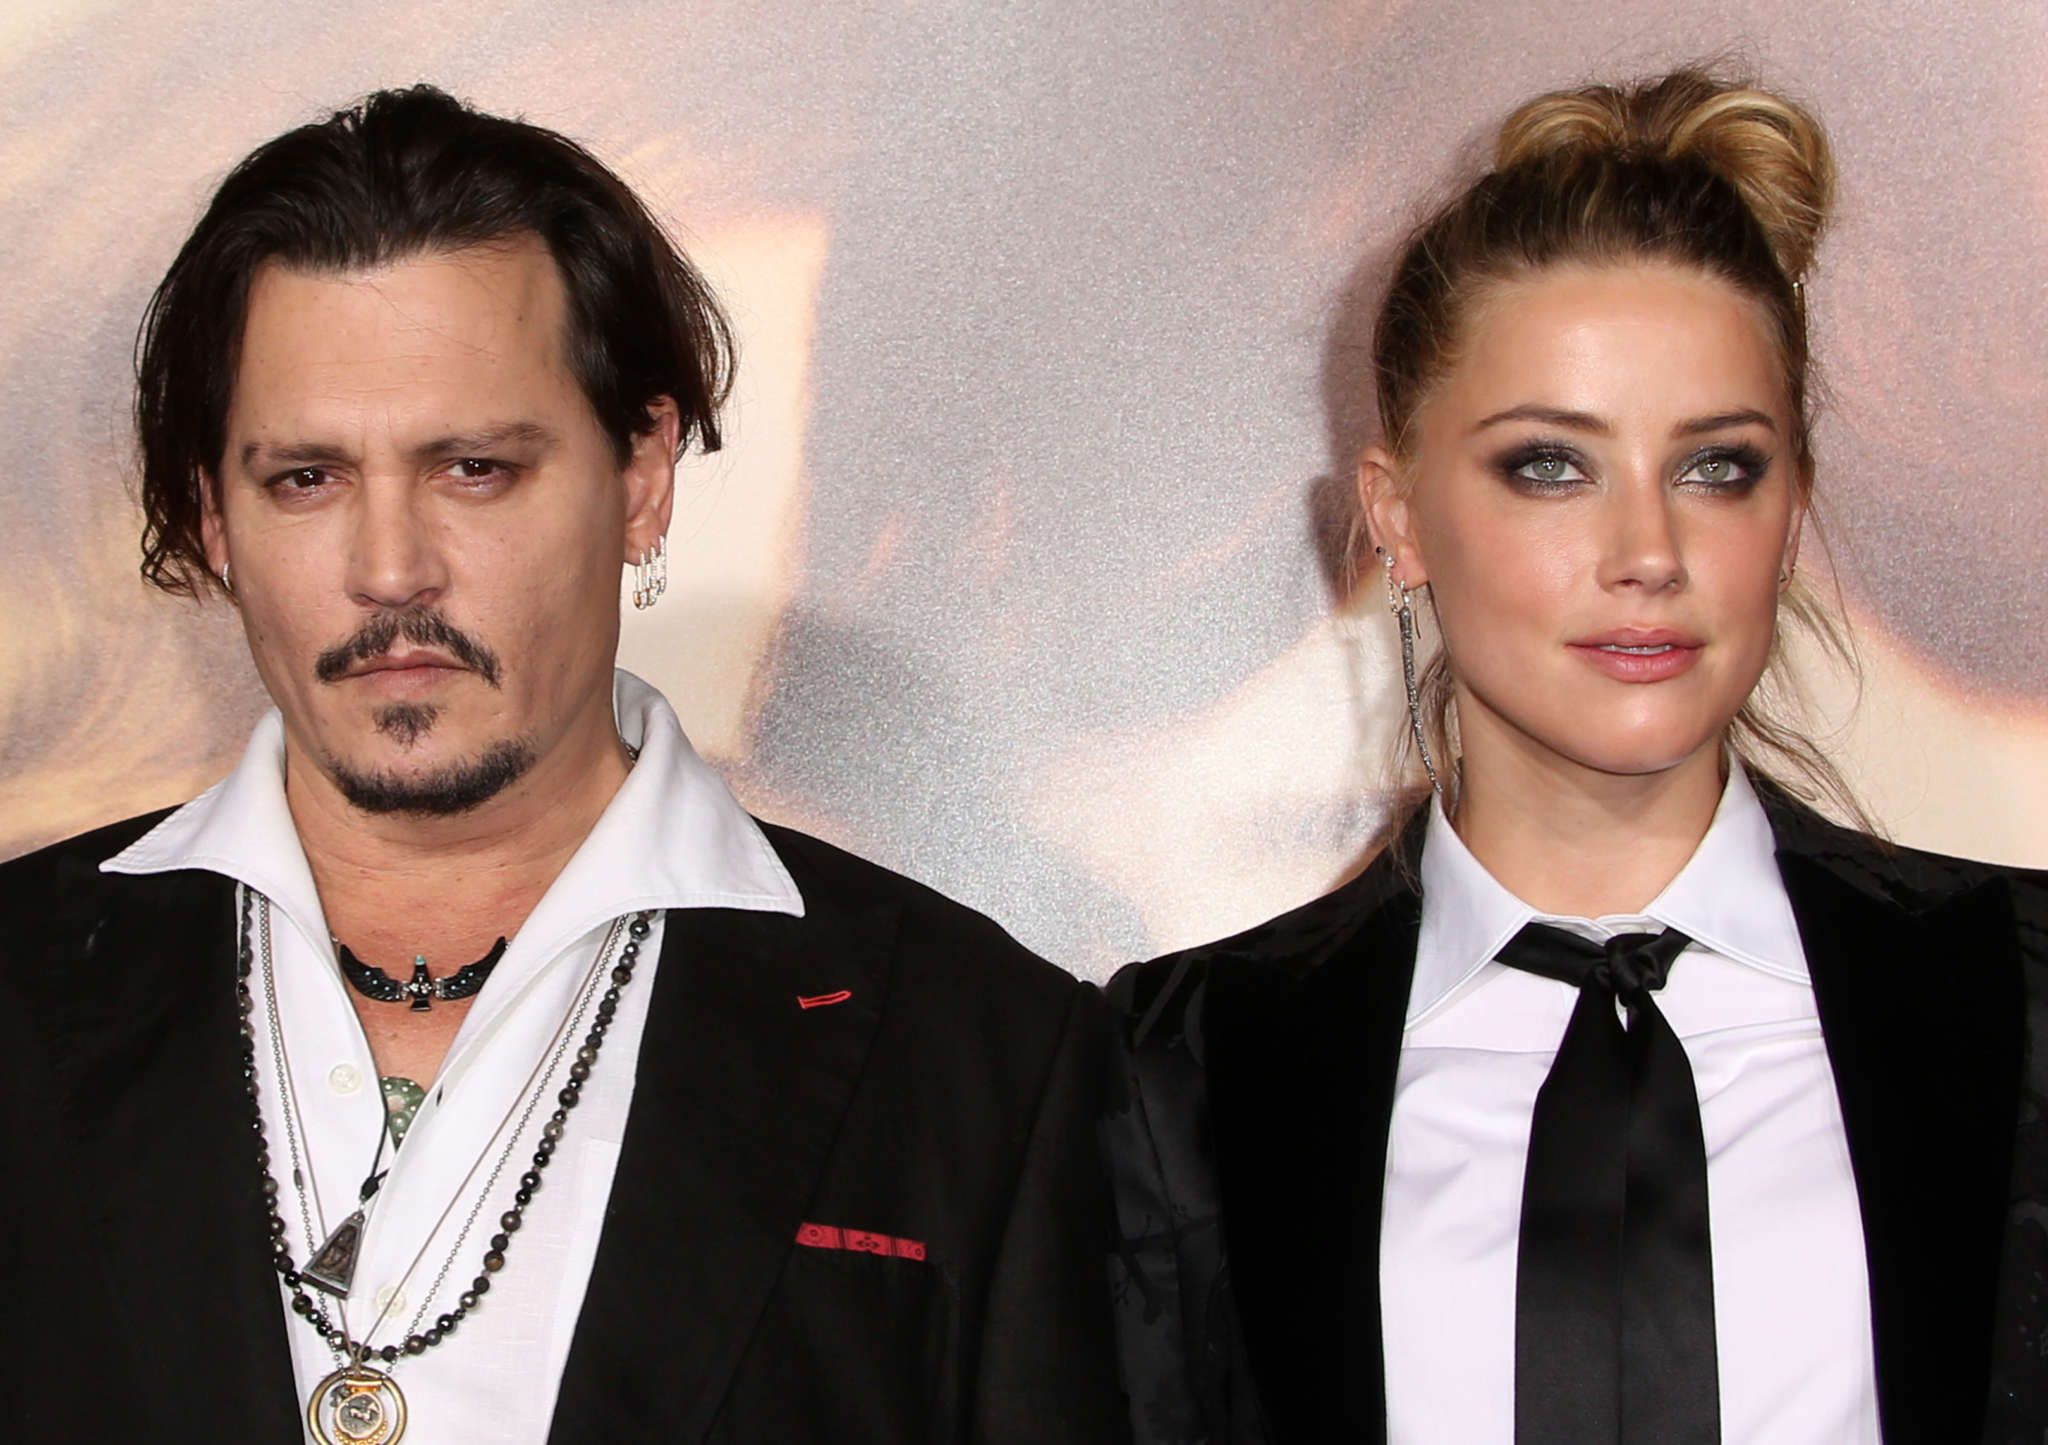 Johnny Depp Denies He Assaulted Amber Heard For Making Fun Of His Wino Forever Tattoo Amber Heard Johnny Depp Johnny Depp And Amber